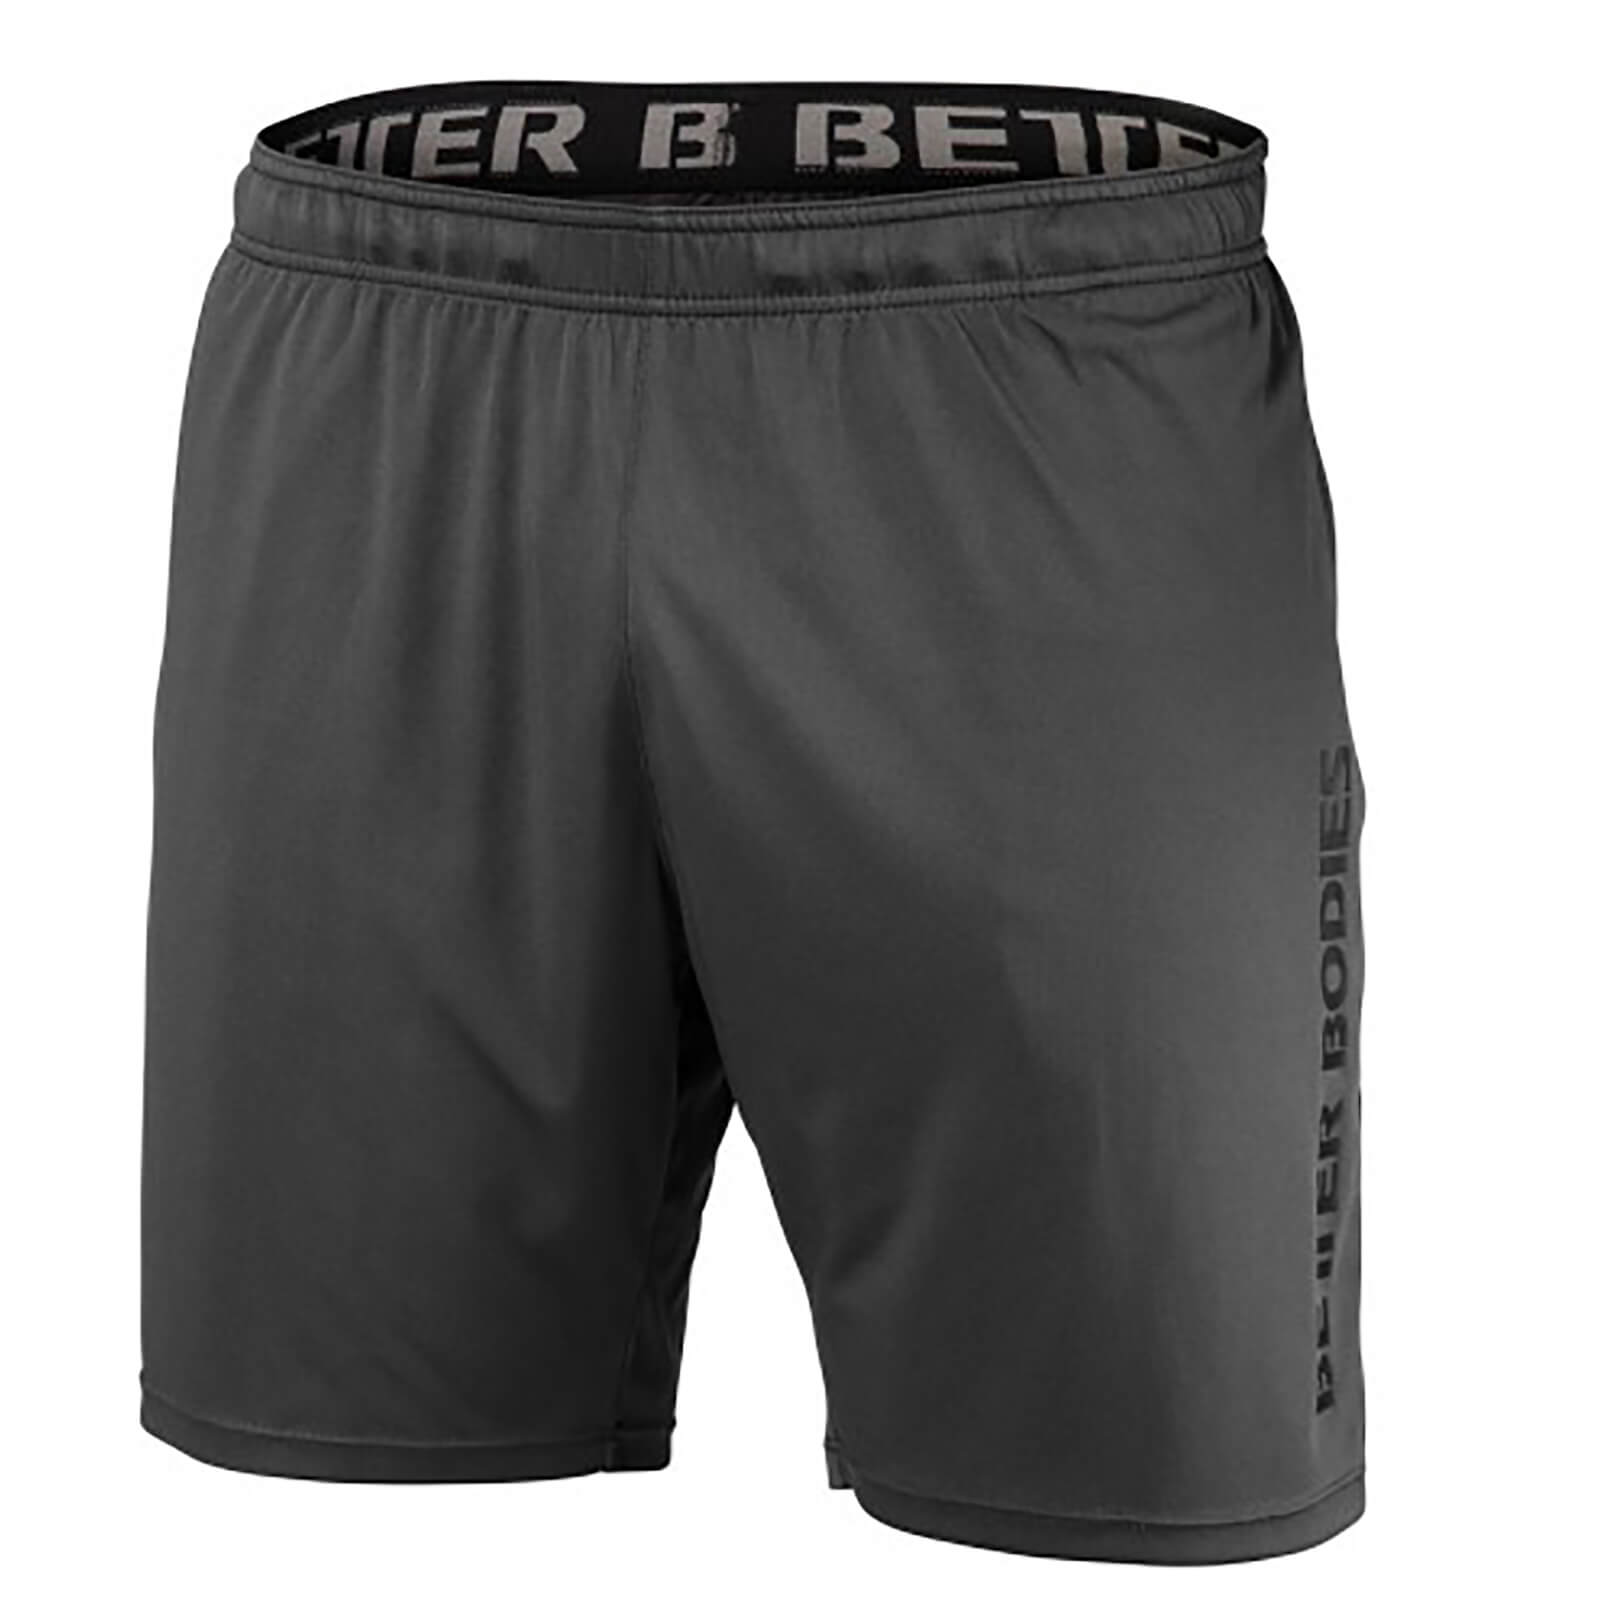 Better Bodies Loose Function Shorts - Iron - S